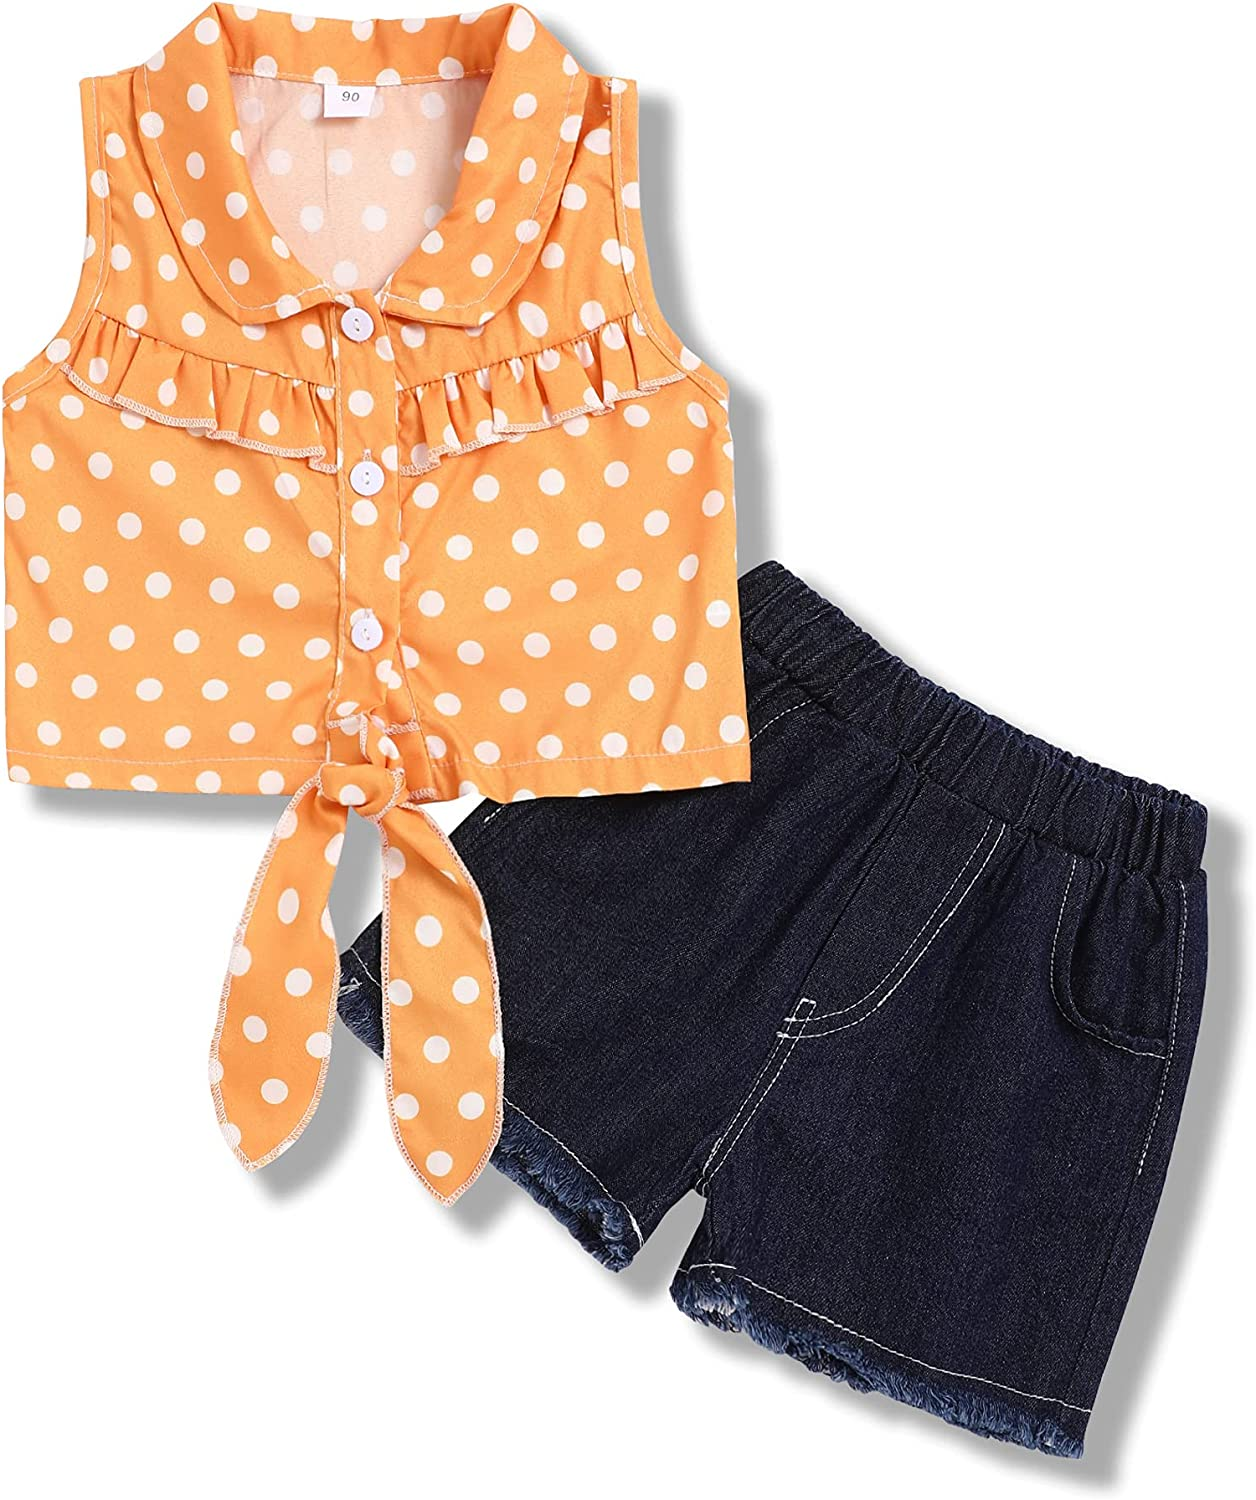 Toddler Baby Girl Clothes Sleeveless Spot Top+Jeans Shorts Summer Outfits Set